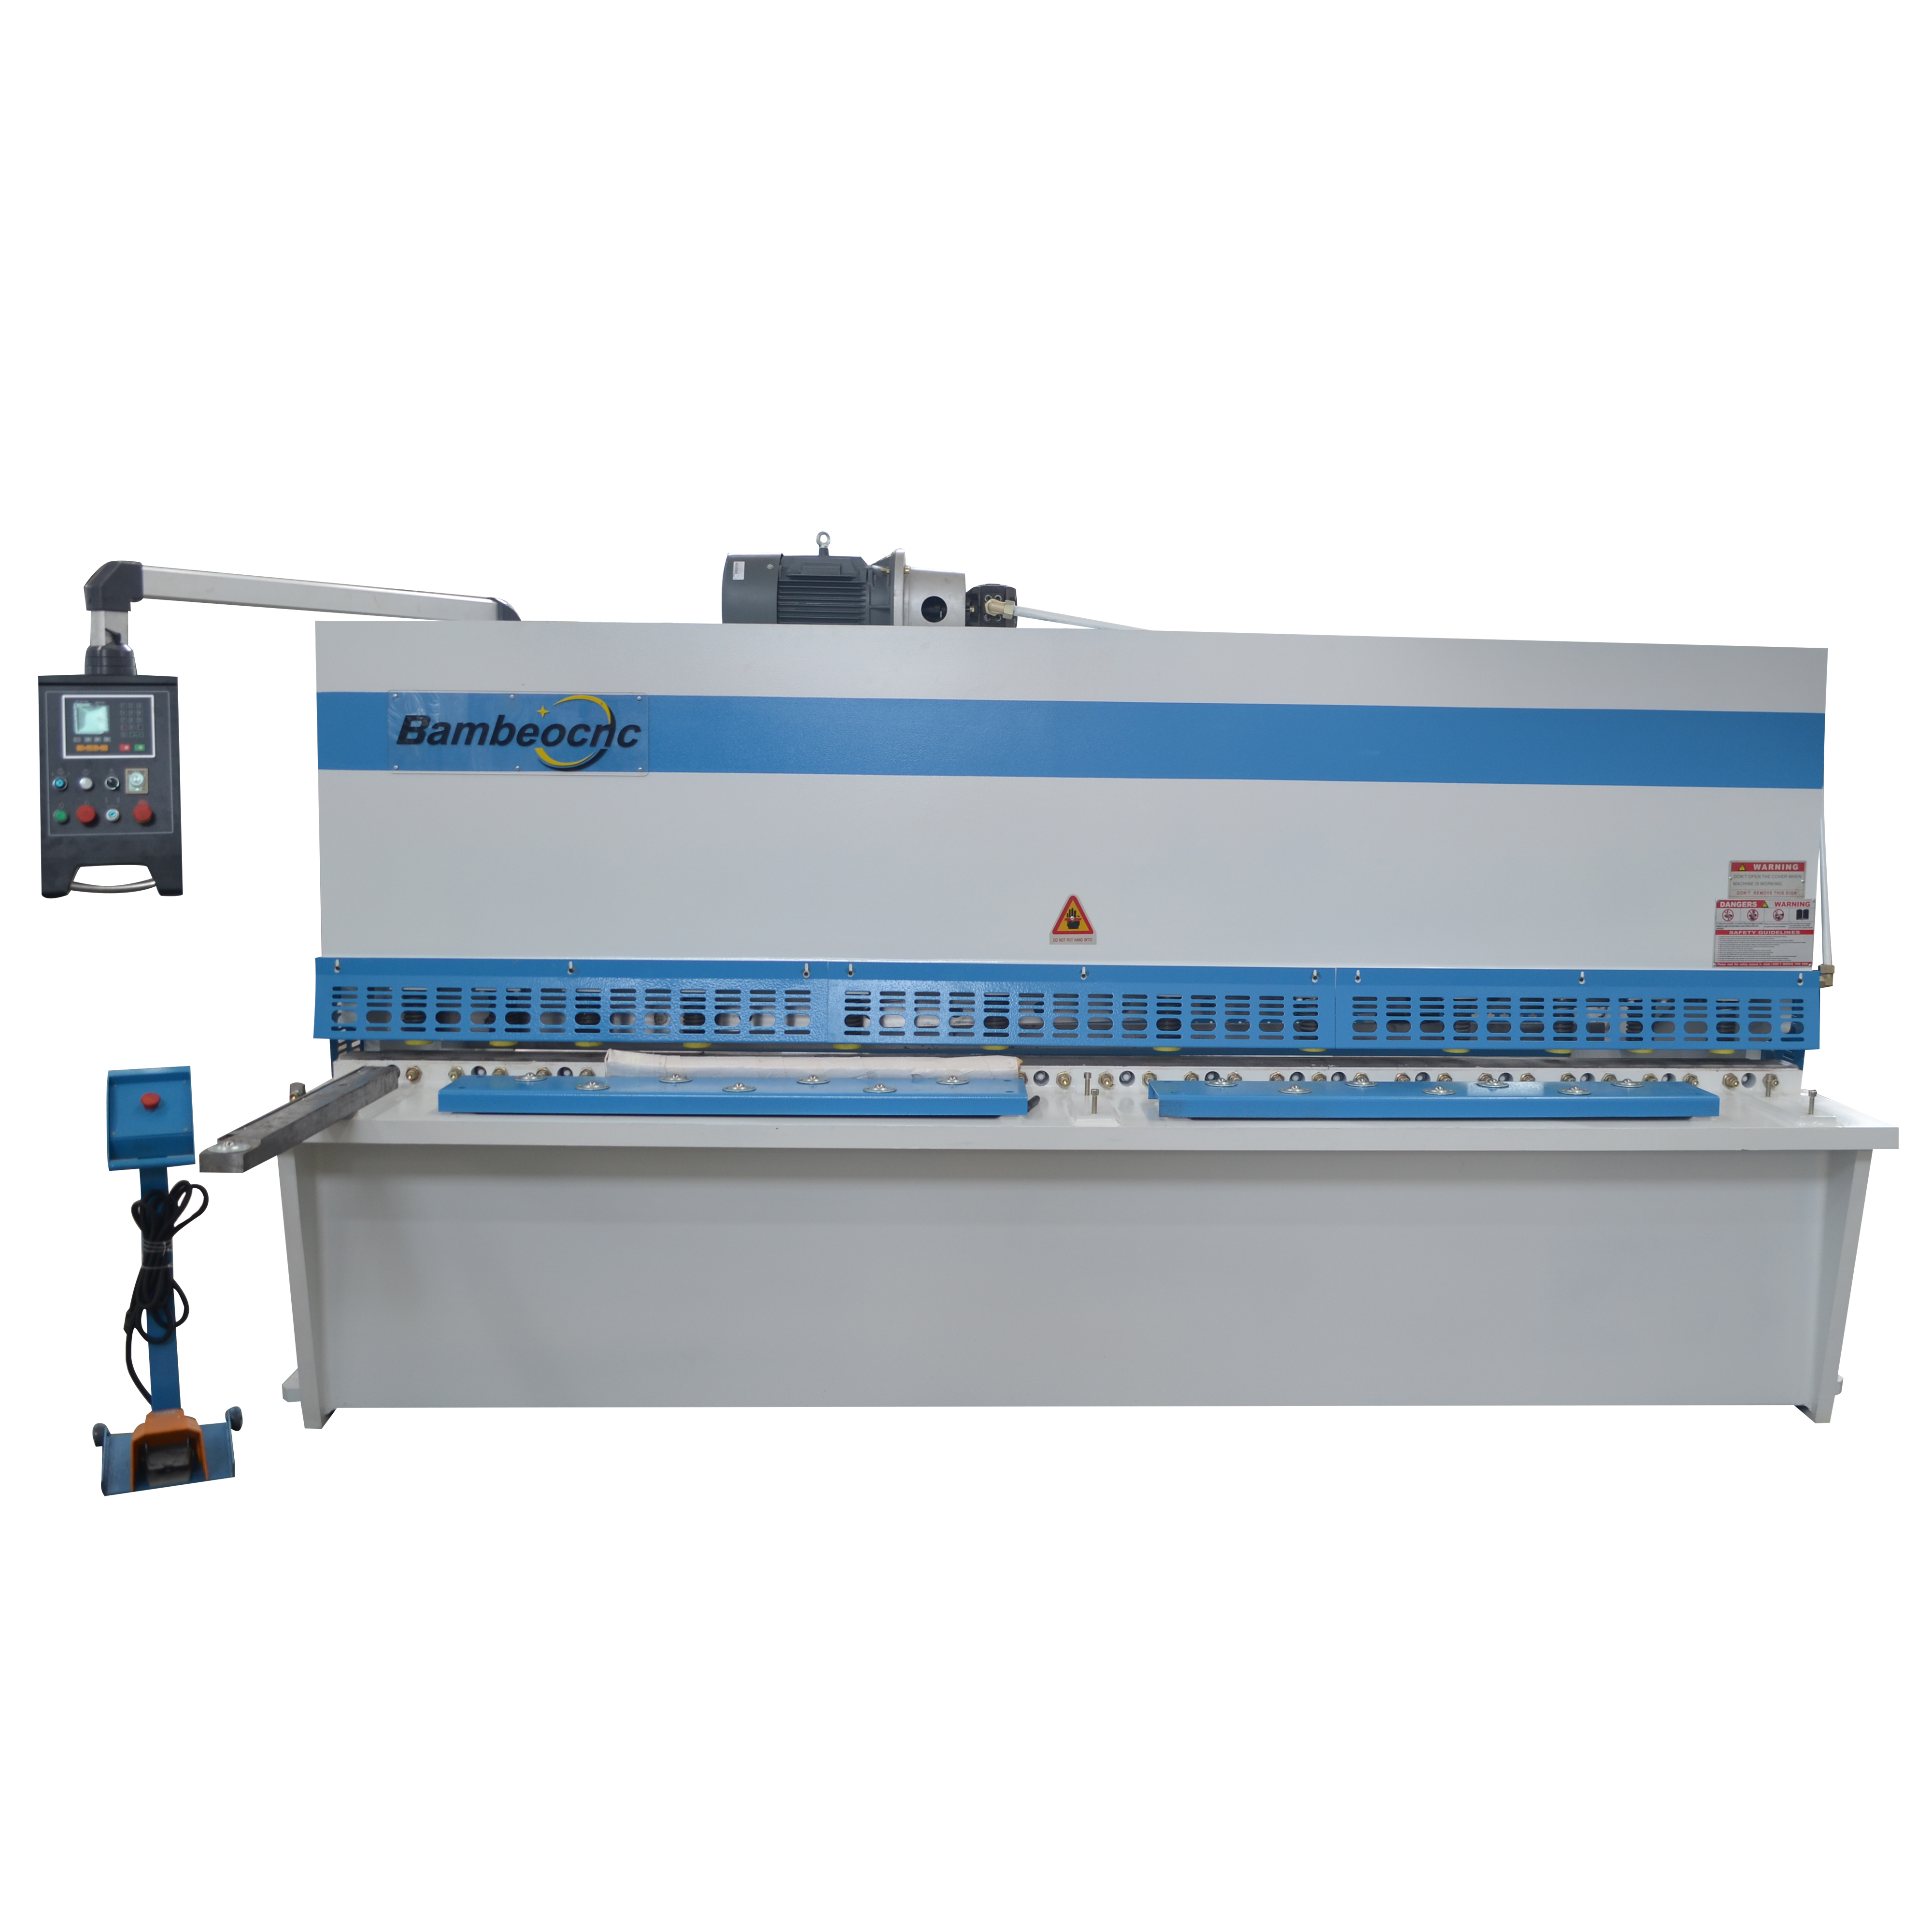 Tools 8*4000mm Hydraulic Swing Beam Shearing Machine For Metal Sheet Cutting Buy Now Machine Tools & Accessories